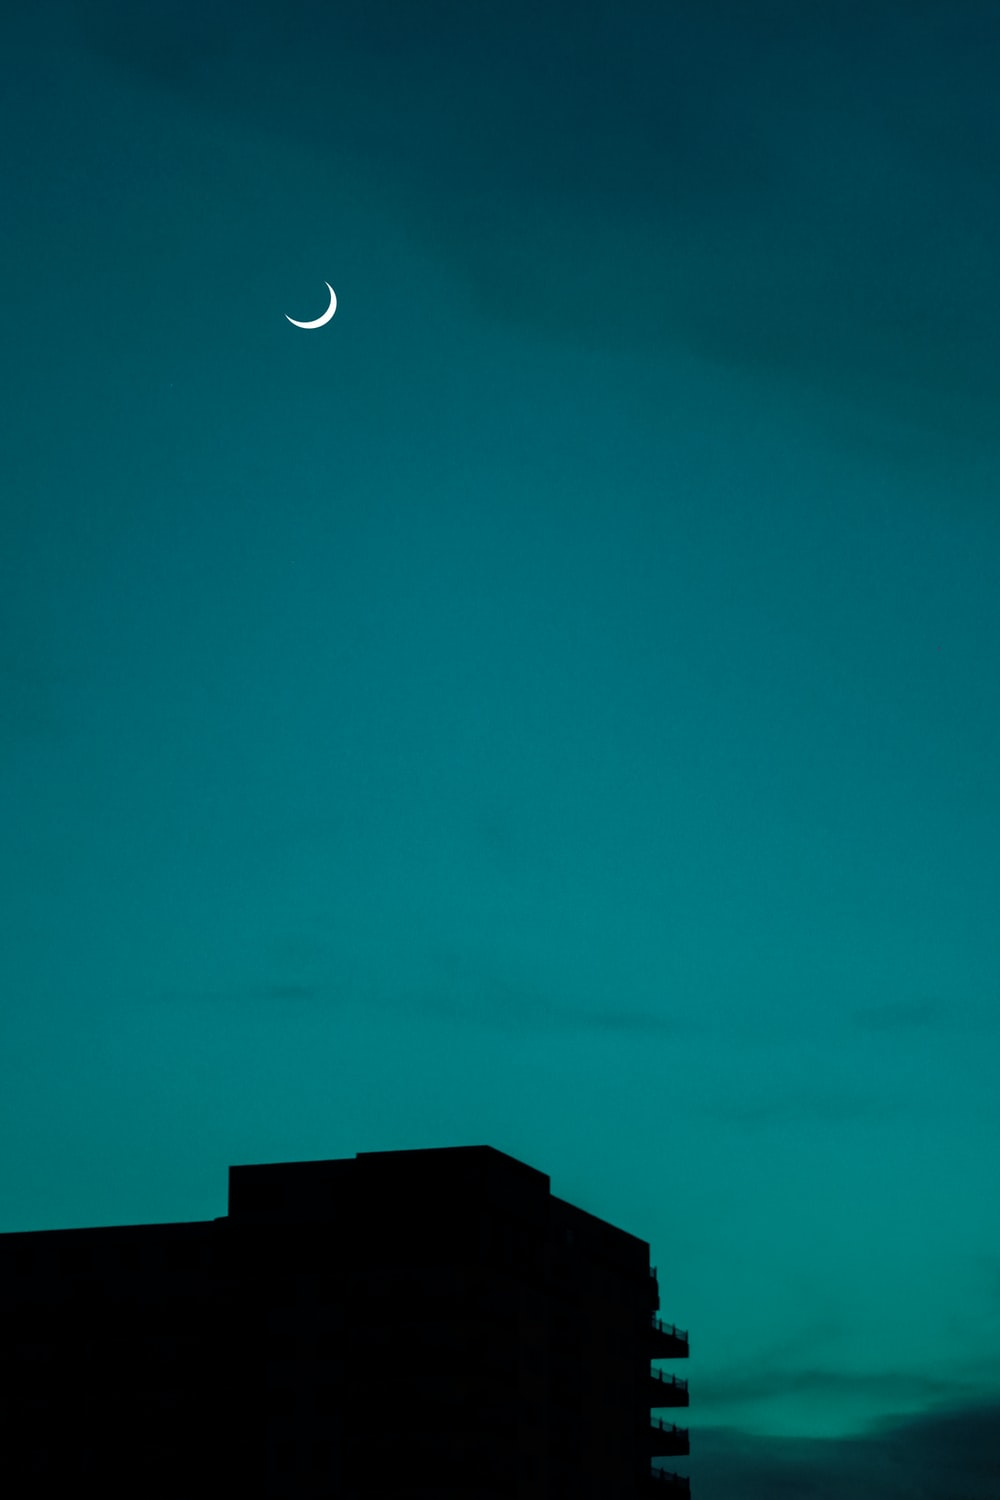 crescent moon over black building